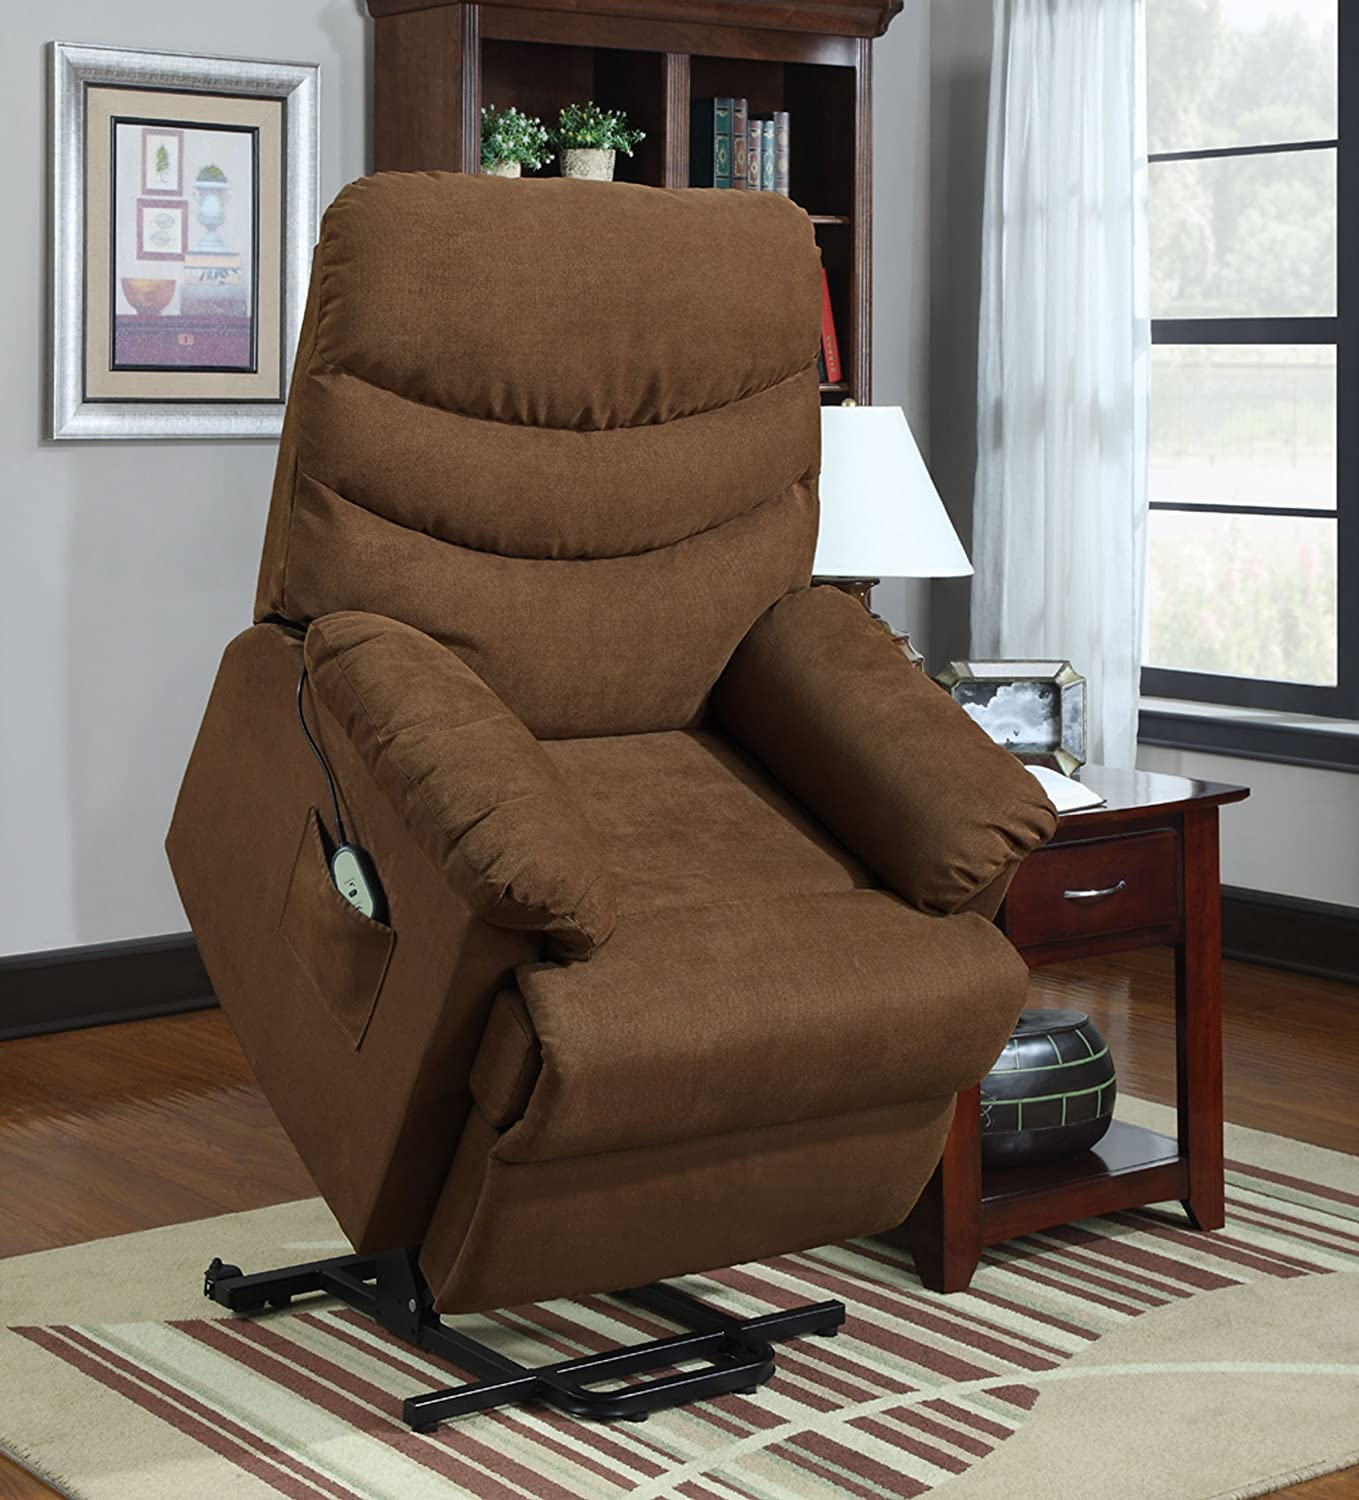 mattresses uc furniture of living comfort recliners lift chairs montage ultra biltrite collection leather at room power chair